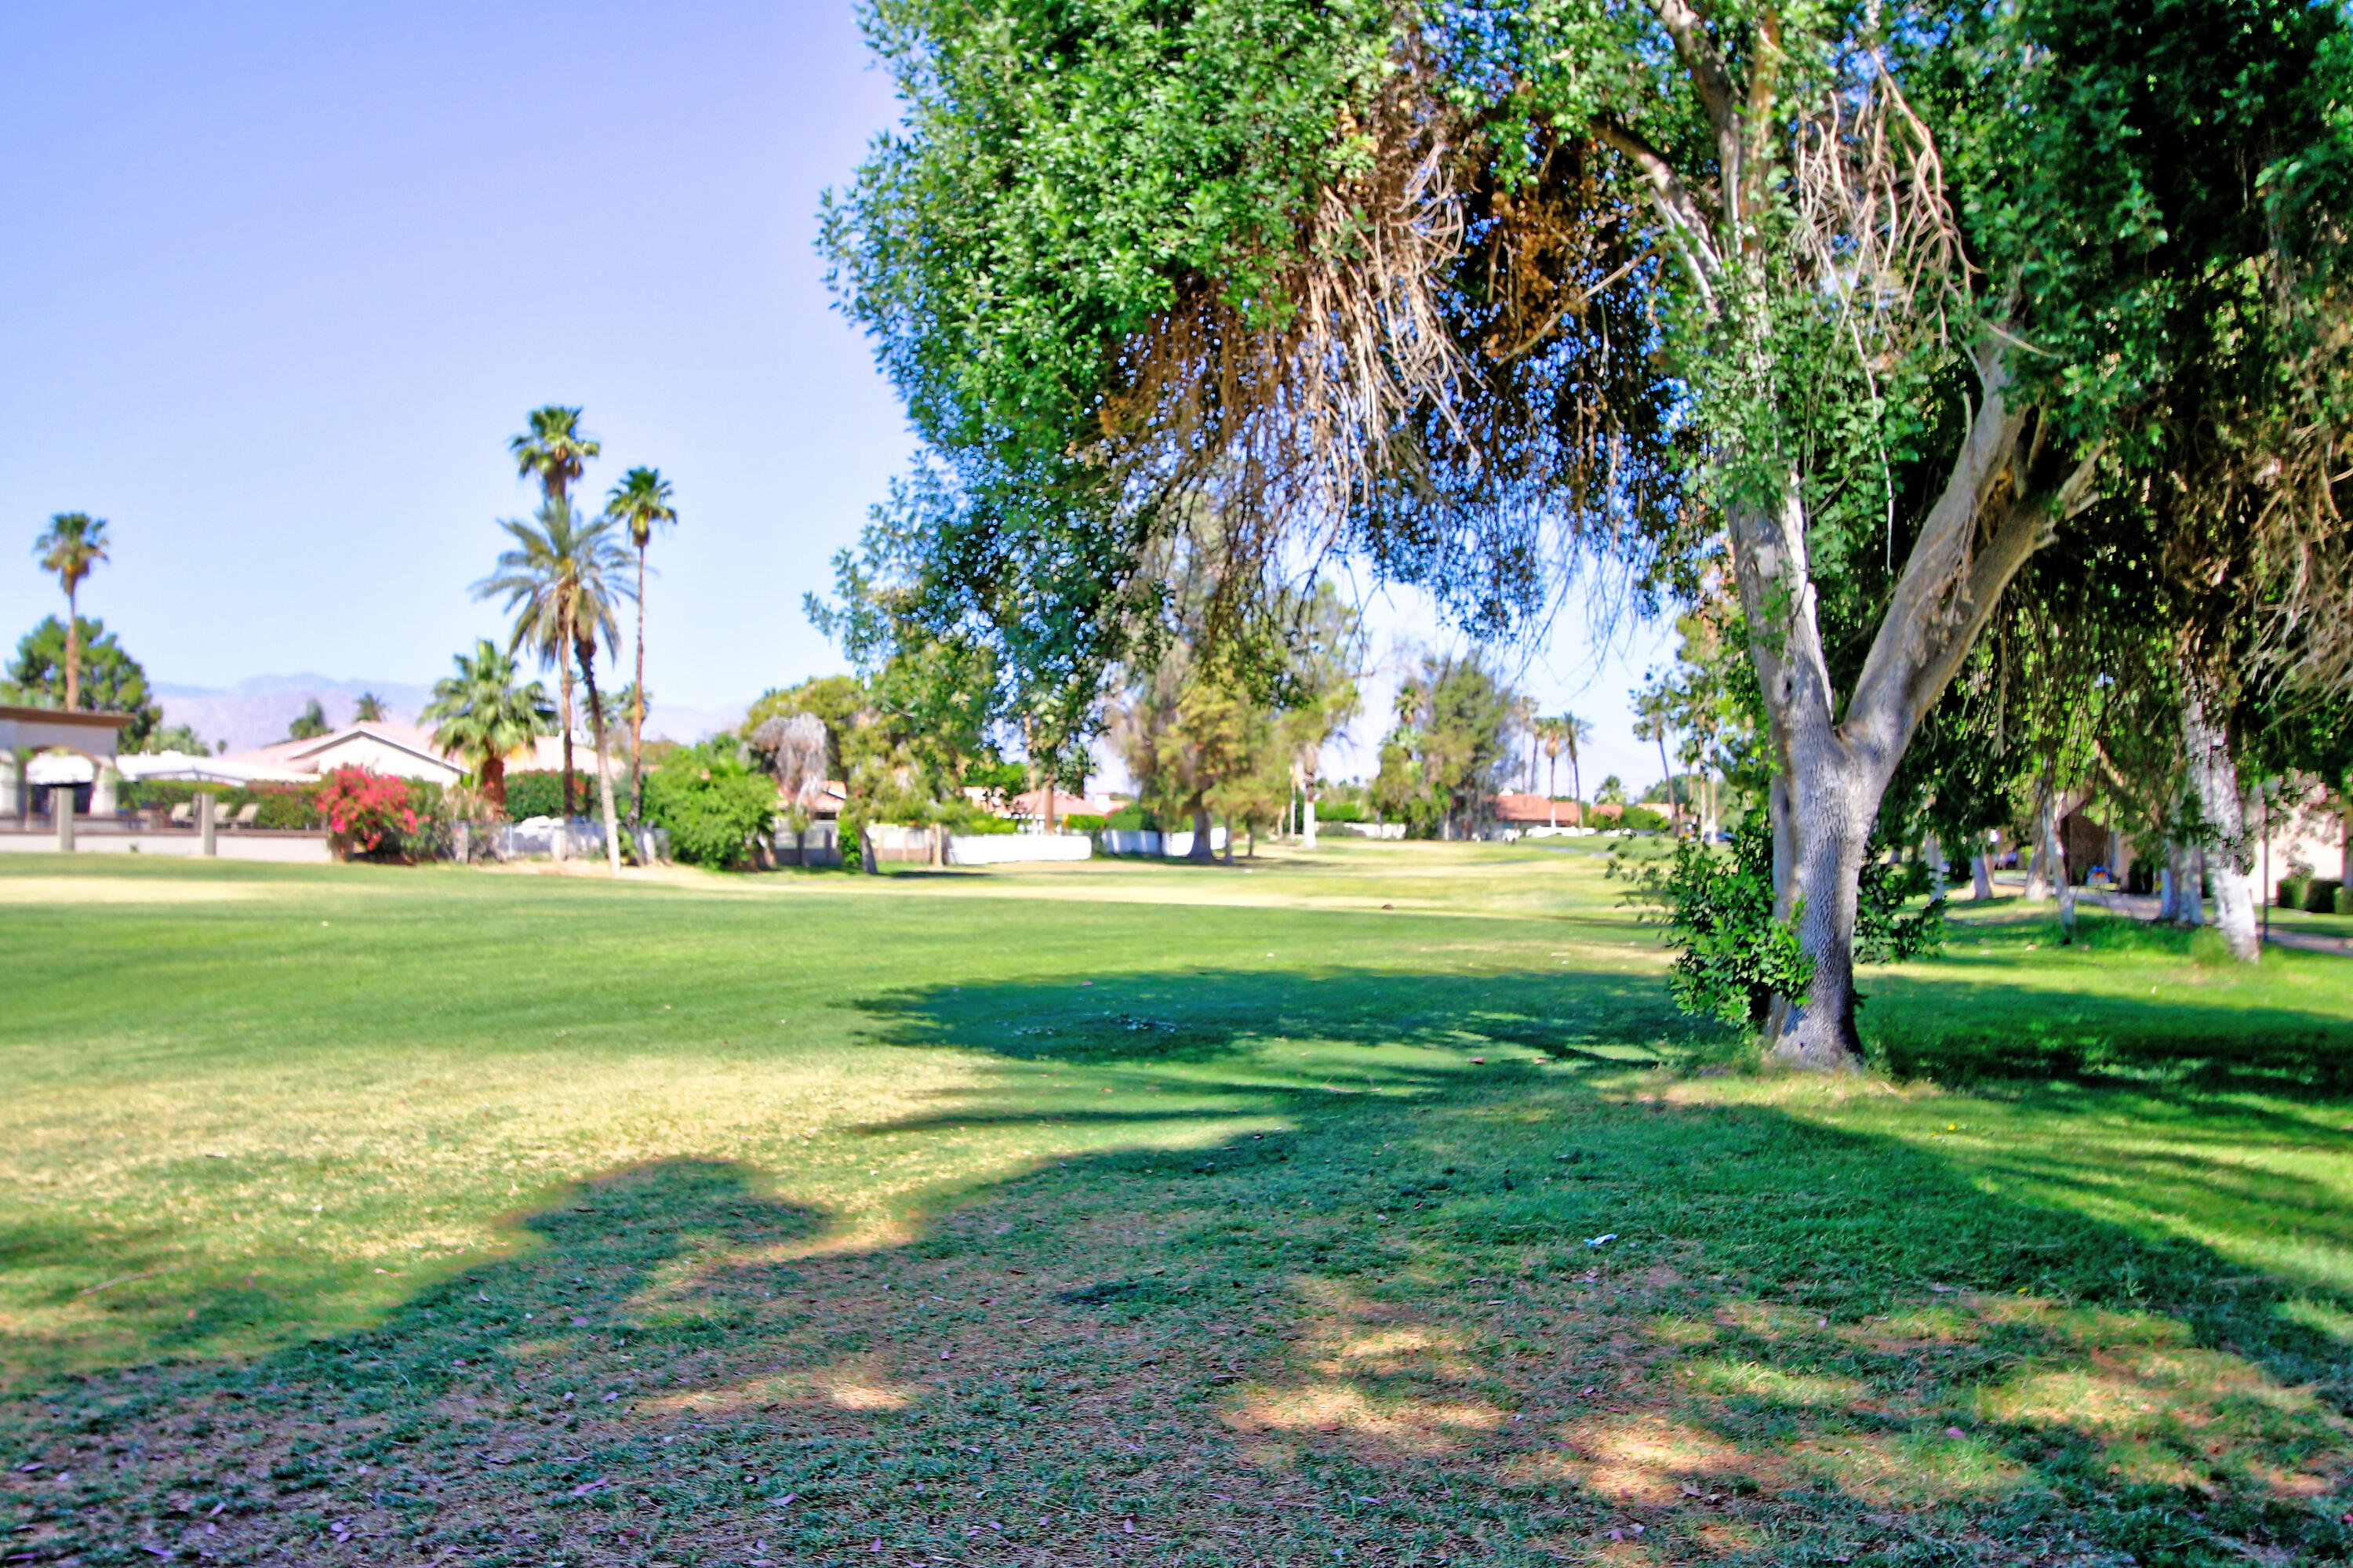 This beautiful, updated condo on the  golf course at Indian Palms Country Club, is the ideal ''Zen'' retreat in the desert.  Suitable for full-time all-season living, the property may also be rented on a short-term basis, to help you take advantage of potential earnings during festival season!  Boasting tile floors on the main level, with carpeted stairs and bedrooms, the unit has a gourmet kitchen, with granite tile, updated appliances, and an open dine-in Kitchen; main floor laundry; separate formal living room; an office alcove; Bright, open patio at rear, and gorgeous golf course and mountain views in the front.  Upstairs, you will find 2 ample bedrooms, and a full, tastefully appointed bath.  This peaceful home has been stylishly remodeled, and won't last long at this price, so please make an appointment to see it today!